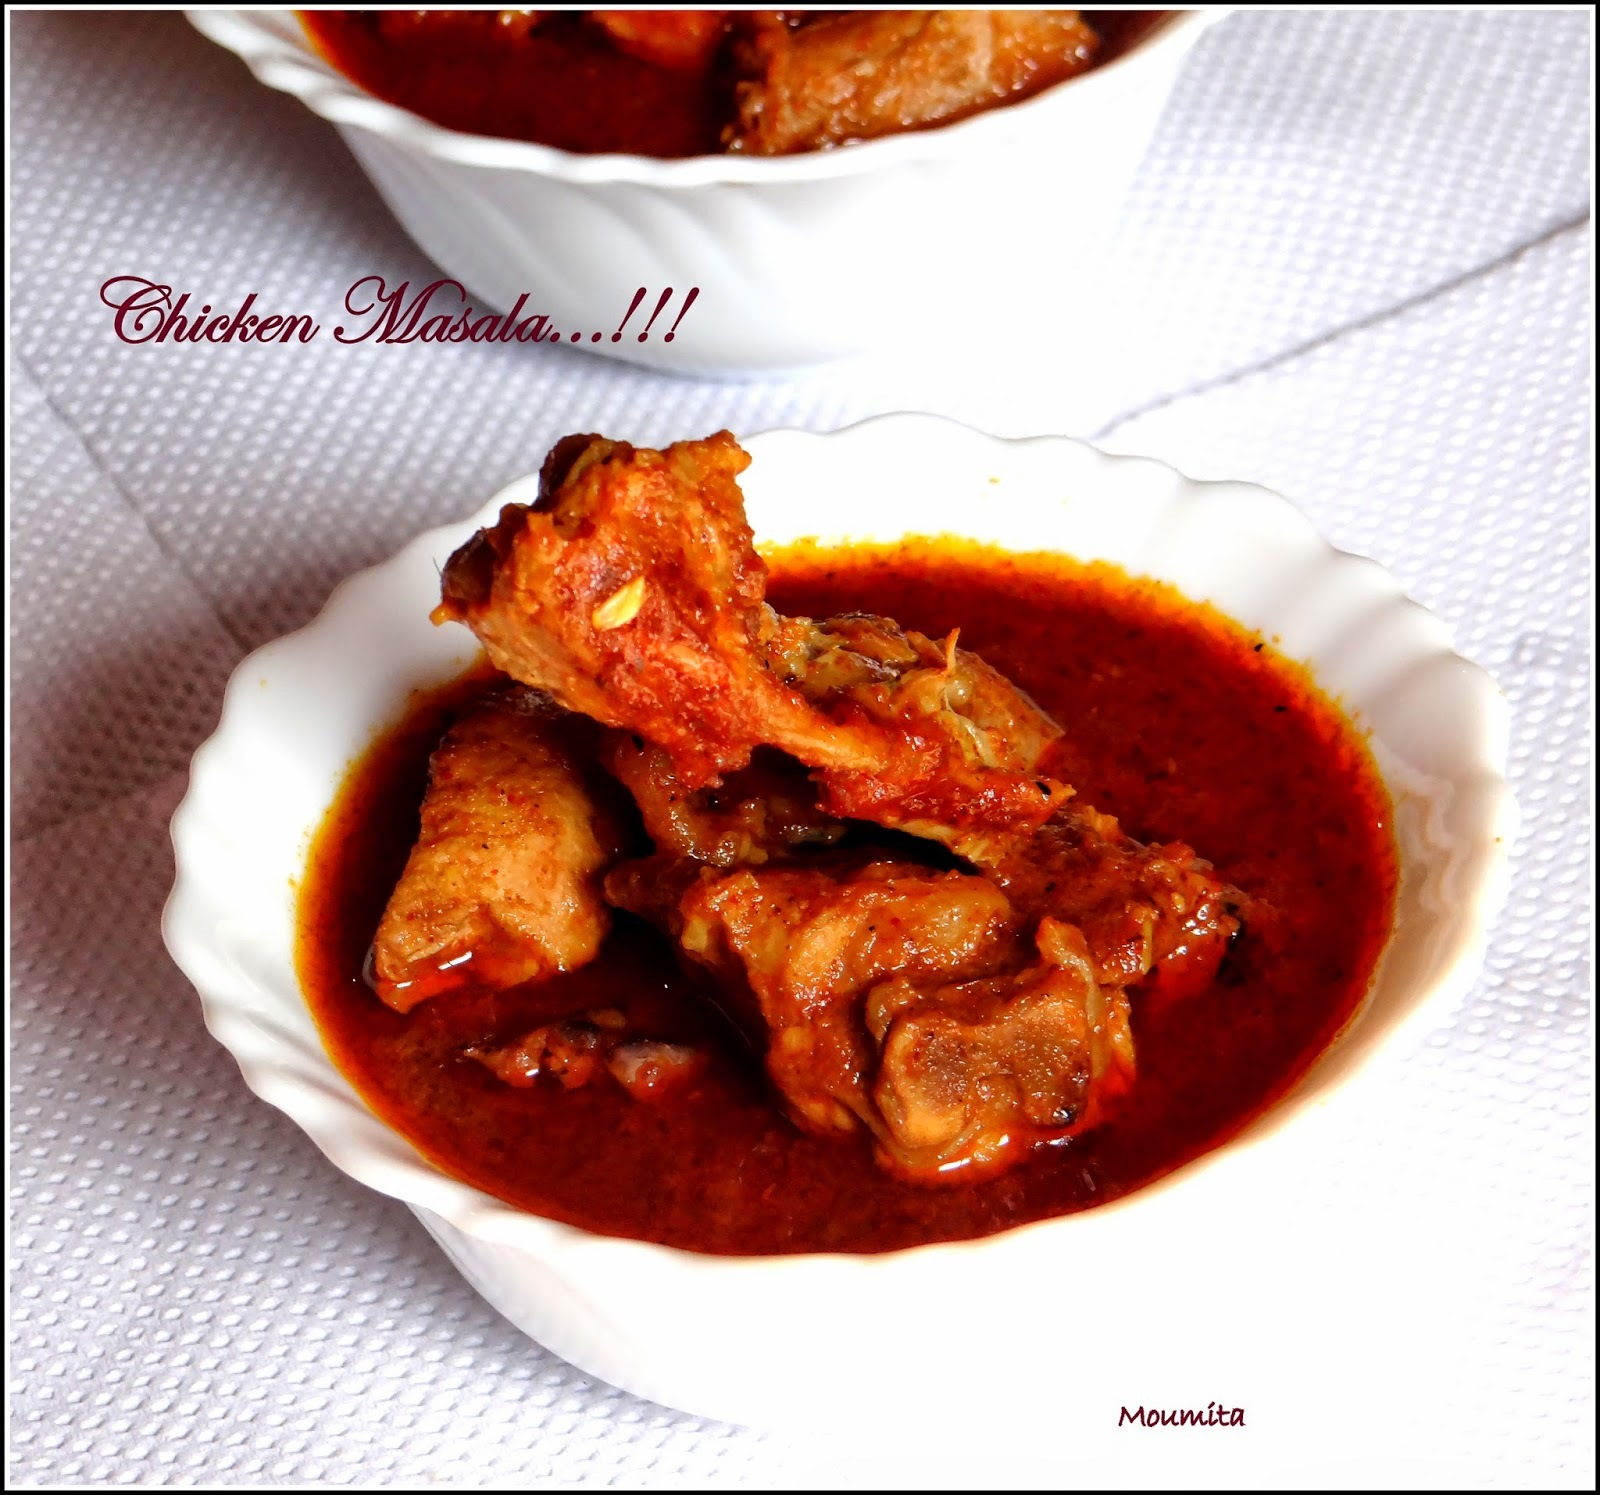 Bengali Style Spicy Chicken Curry....Bengali Wedding Style Chicken Curry.... Chicken Masala...!!!